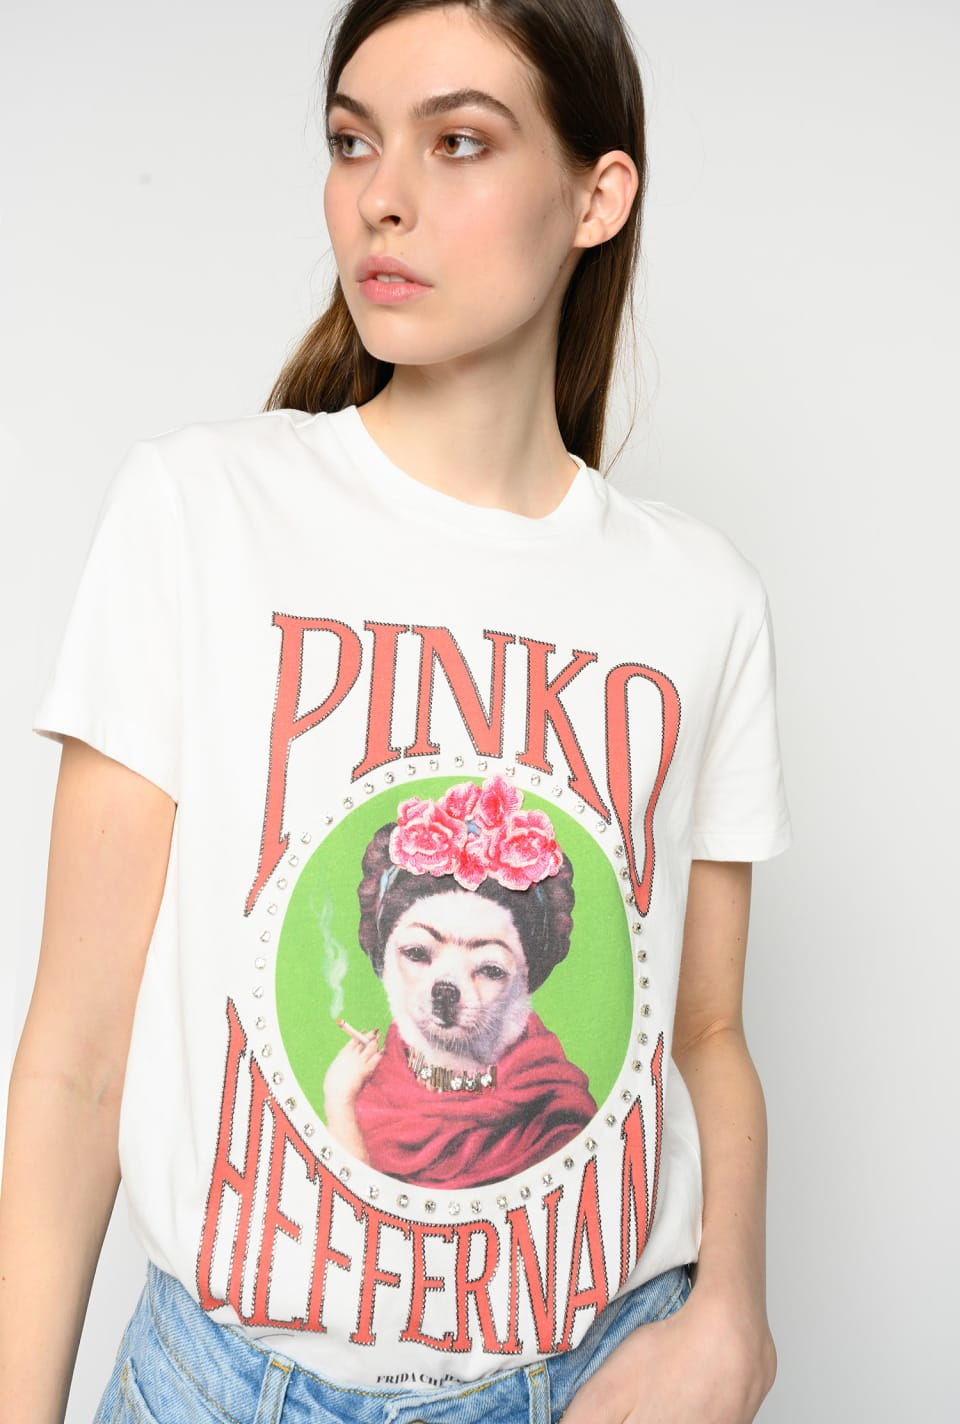 """Frida Chi-Halo"" t-shirt - Pinko"